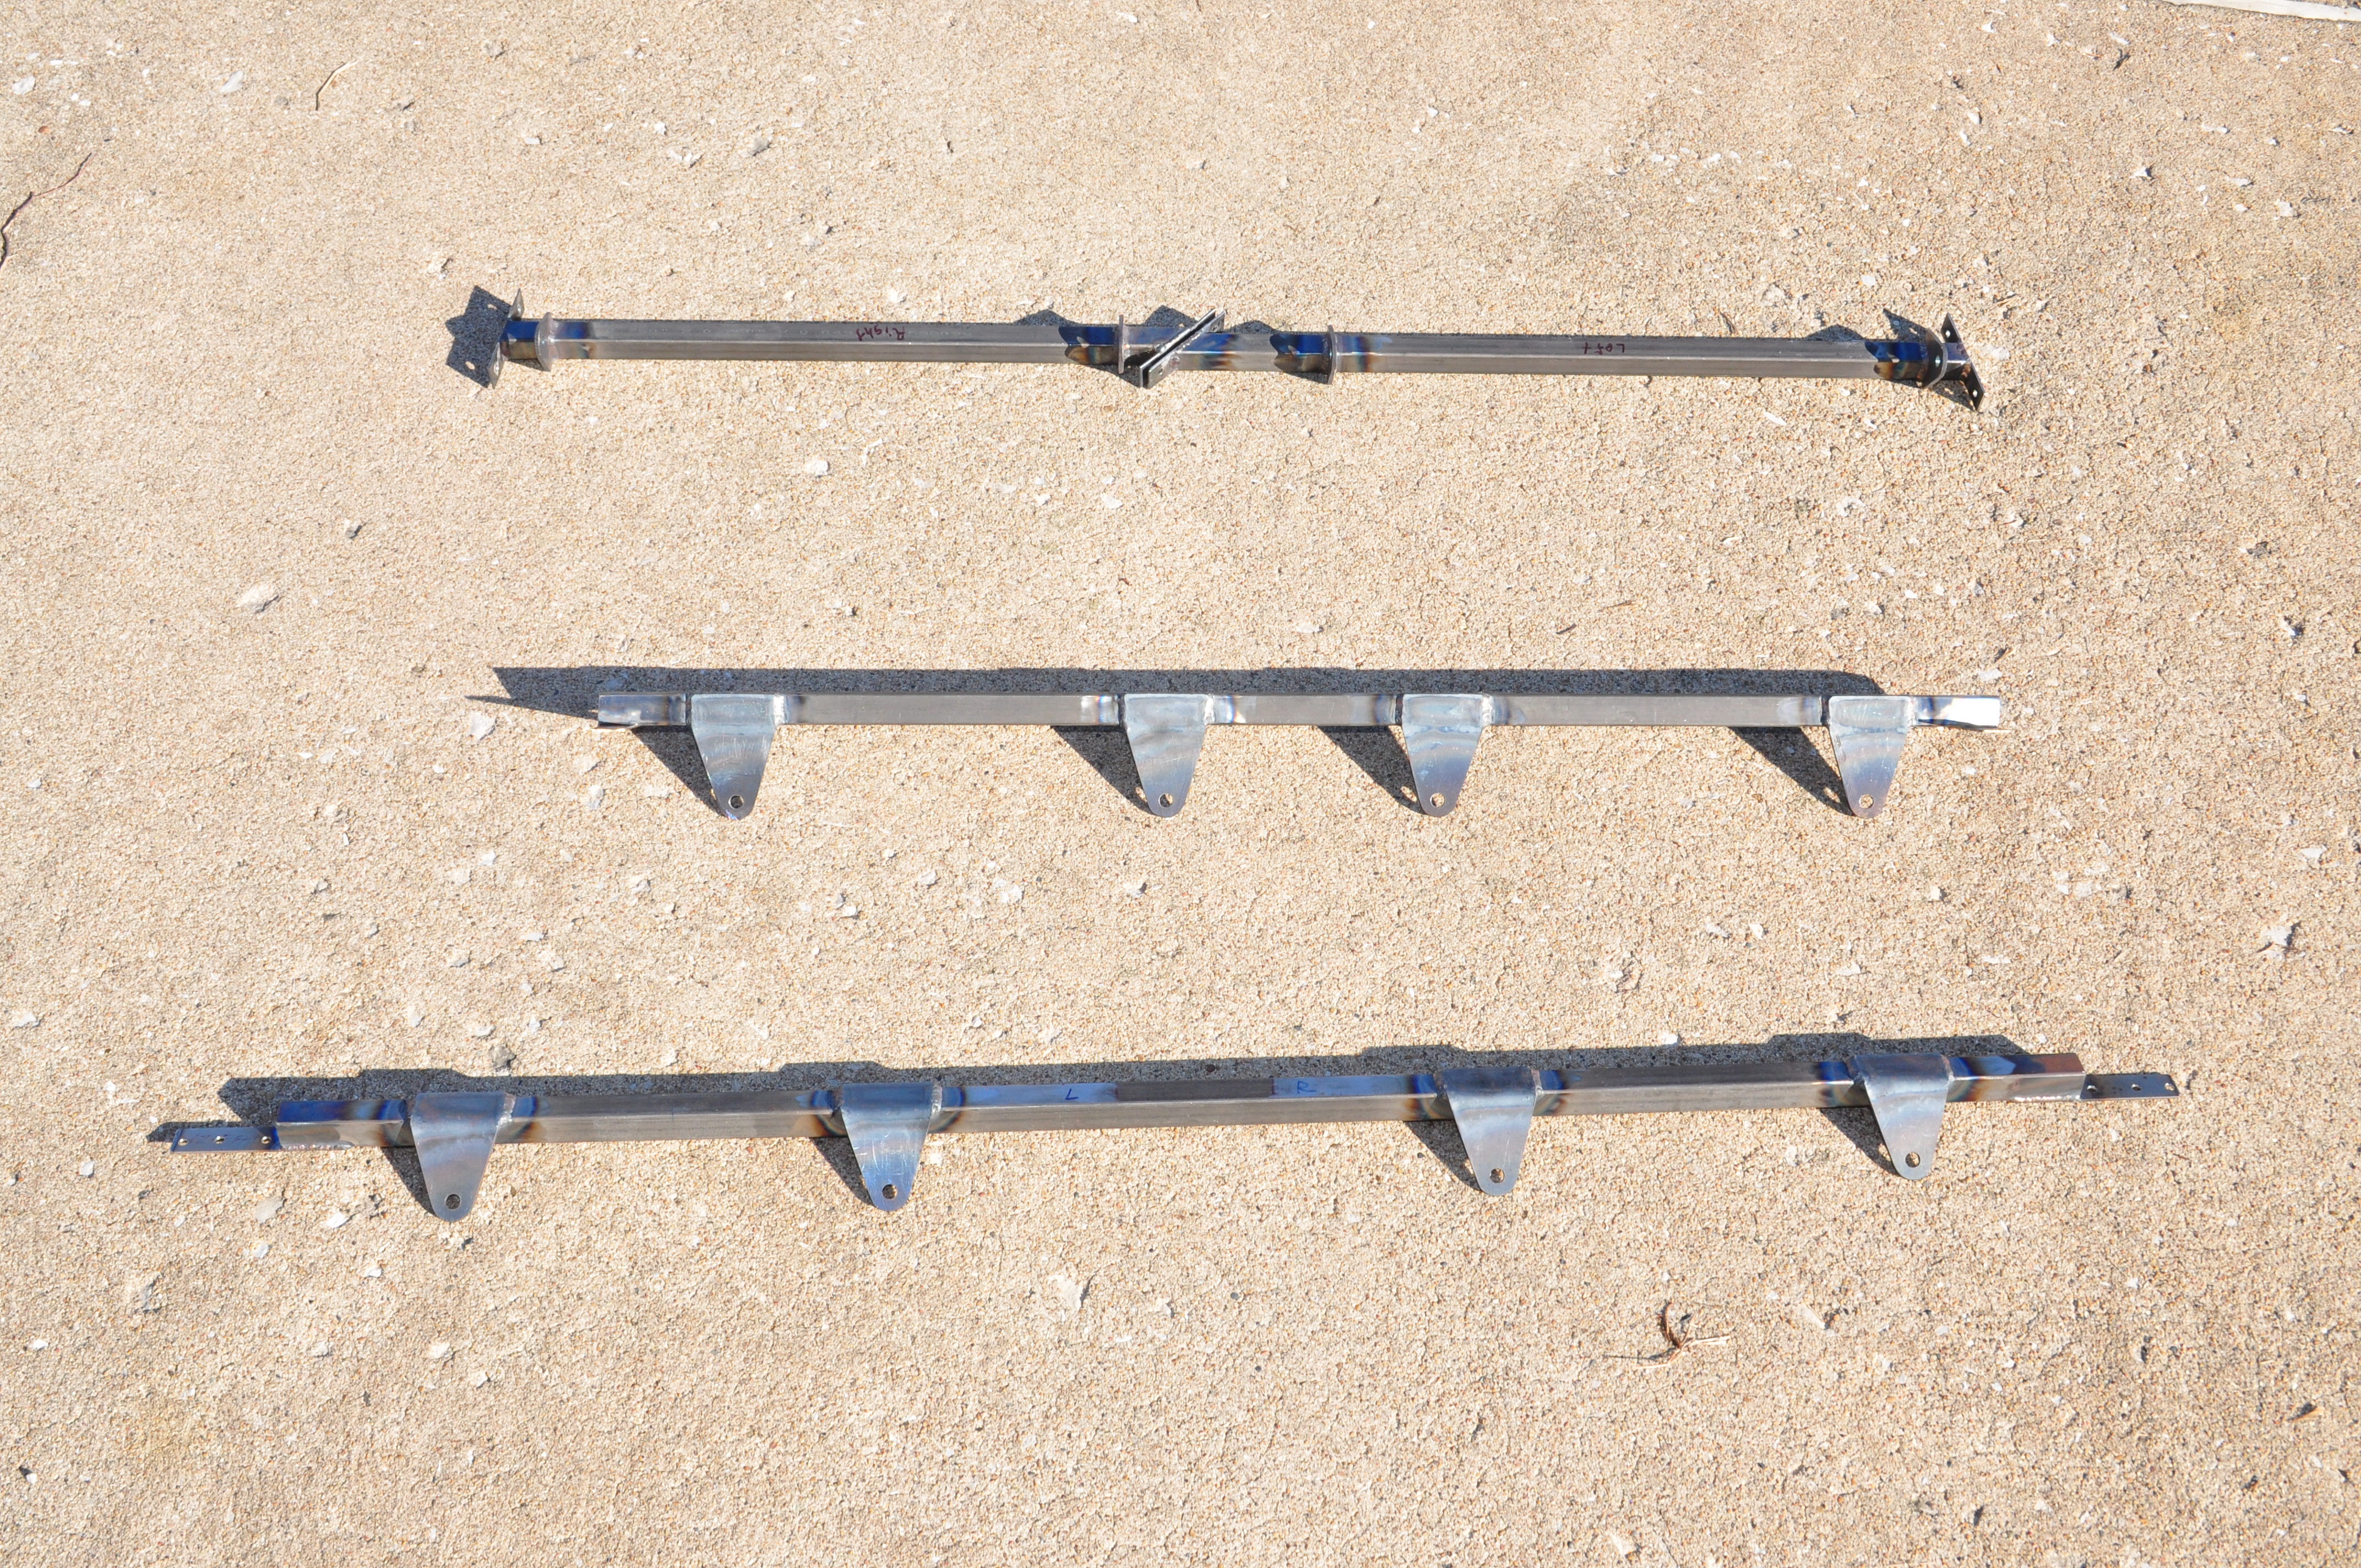 Bede BD-4C safety harness anchors